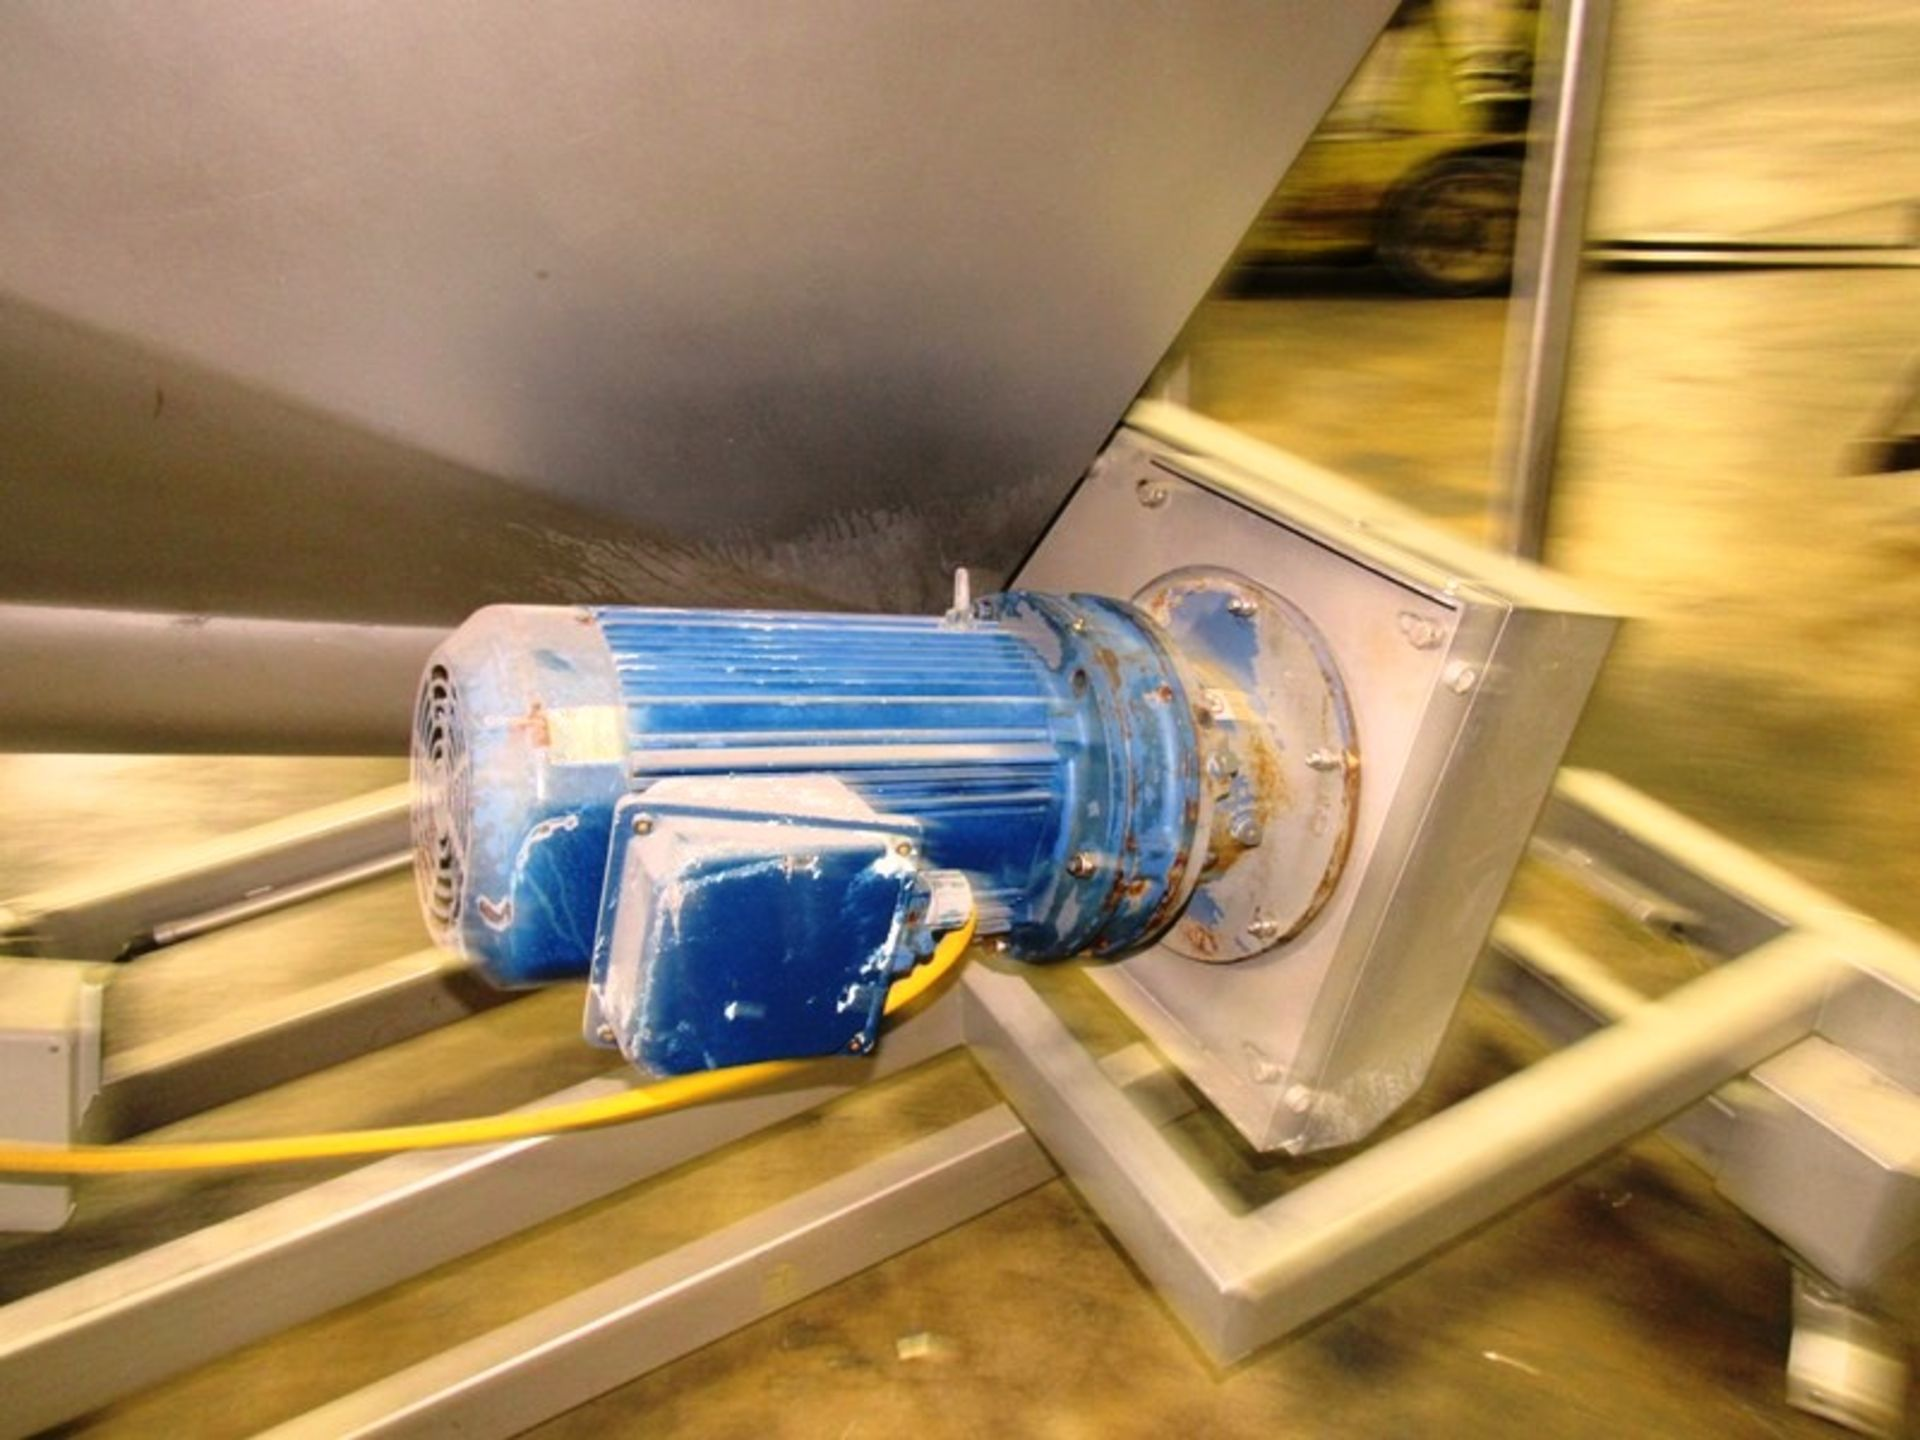 """Stainless Steel Screw Loader, 16"""" Dia. X 8' L stainless steel screw, 5' W X 5' L load hopper, 15 h. - Image 7 of 7"""